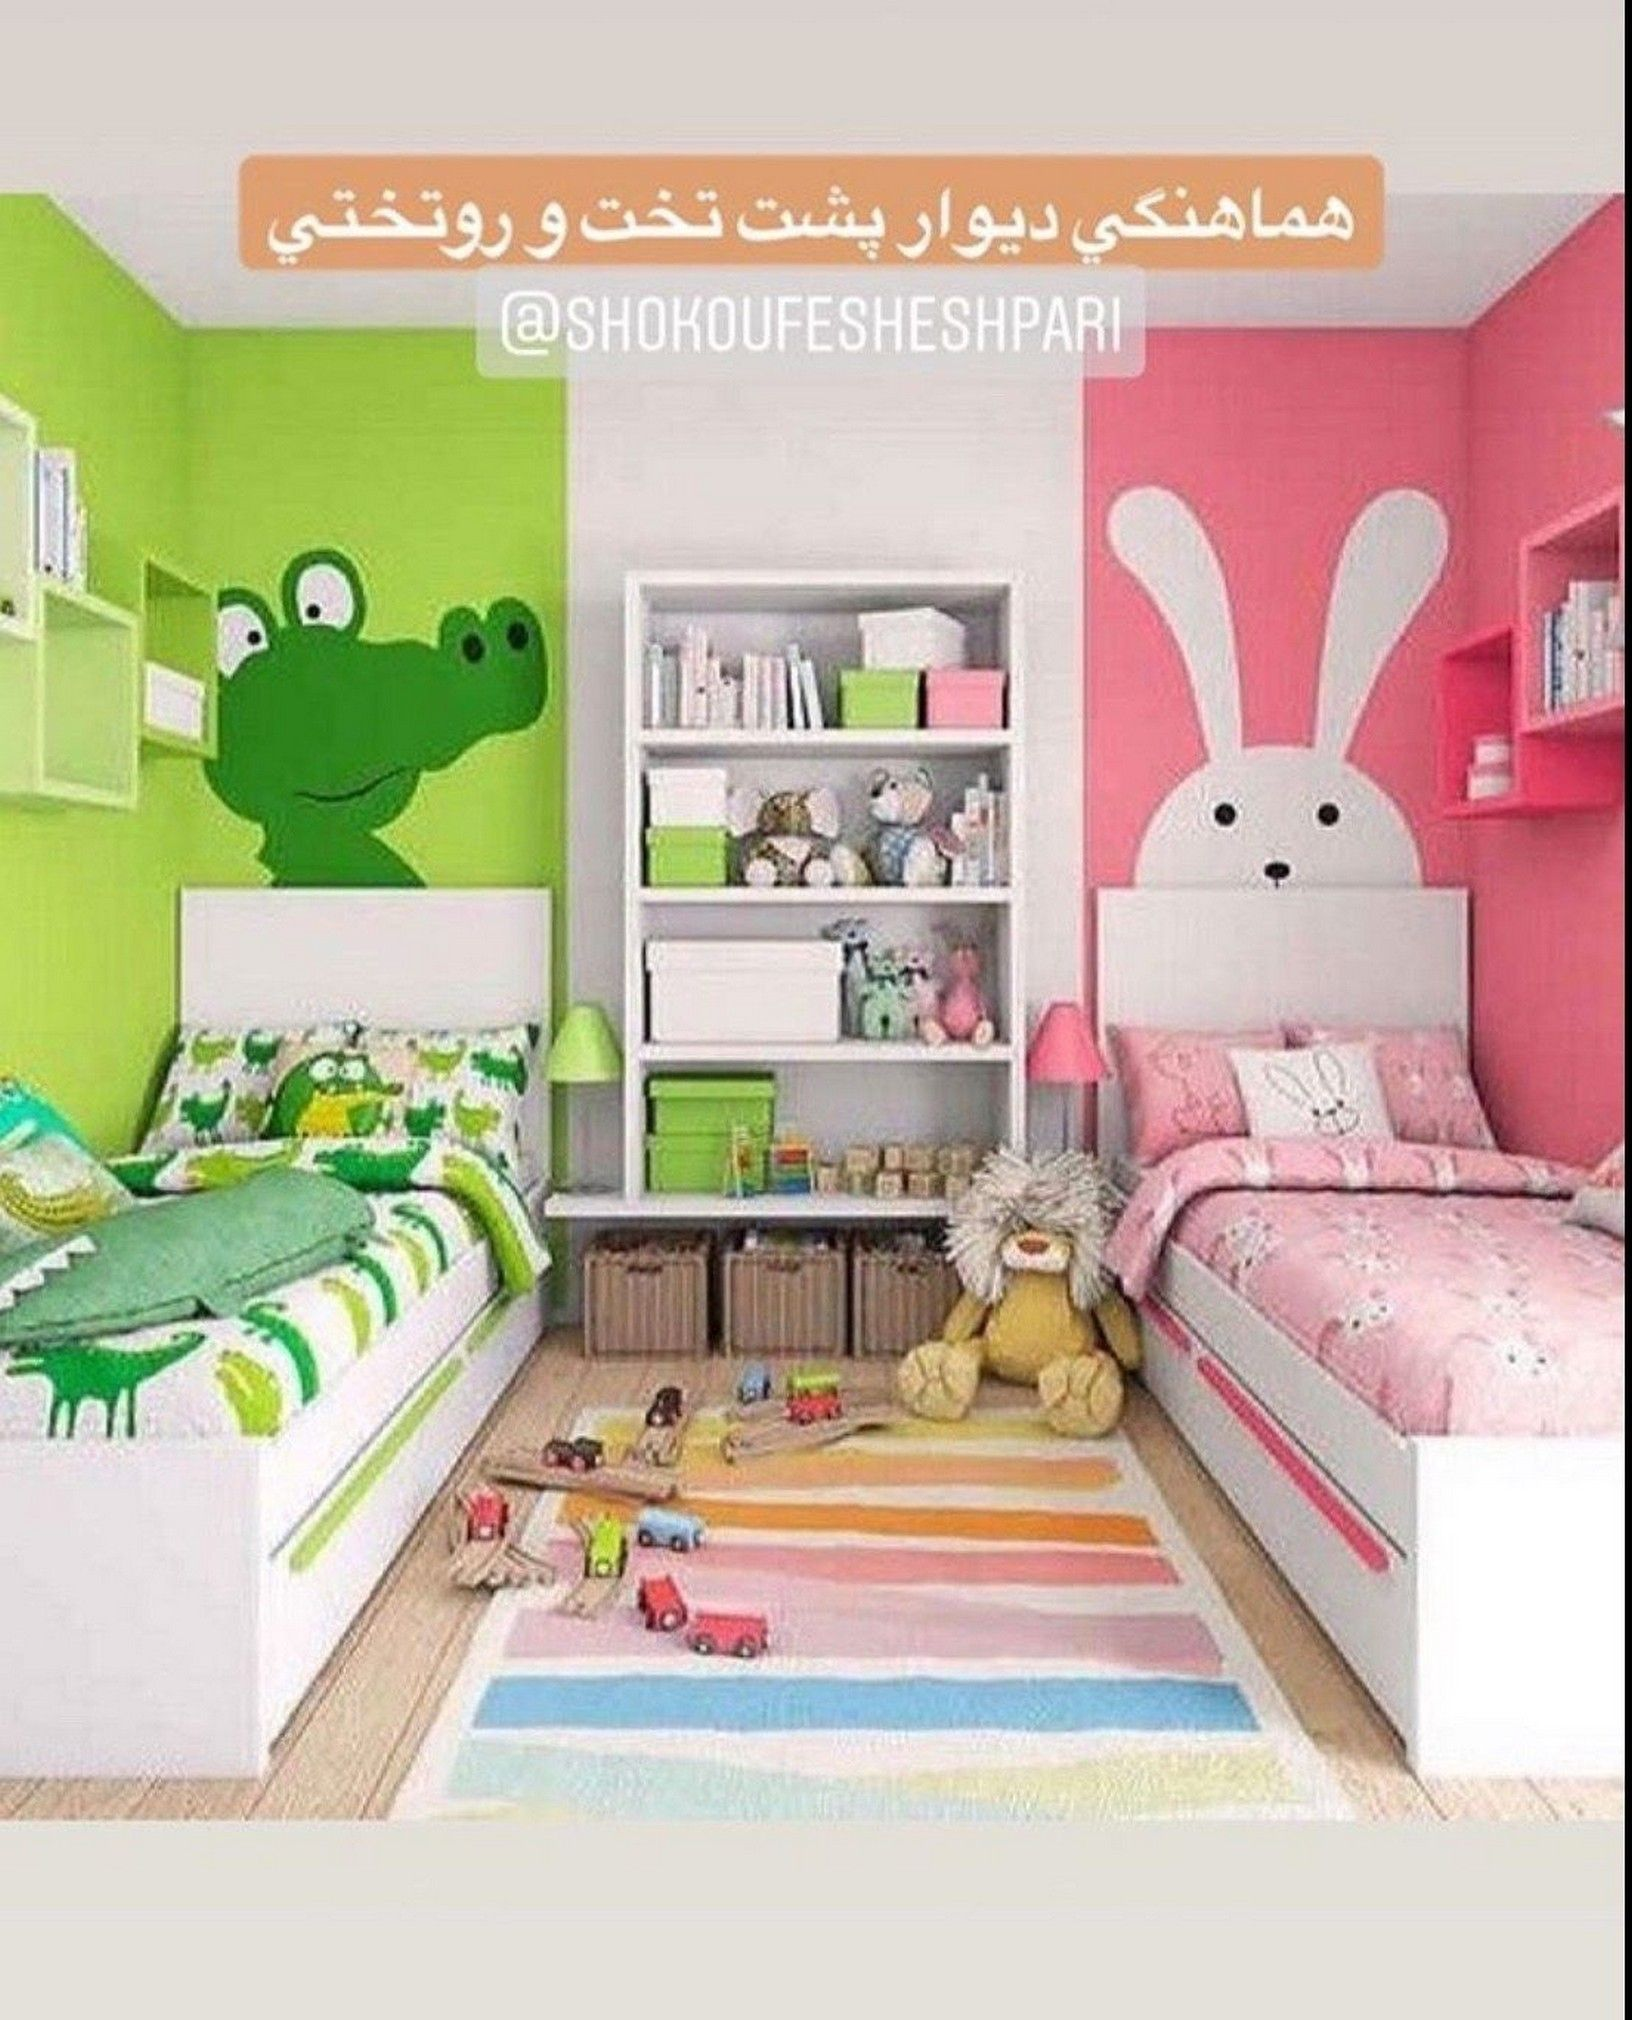 15 Beautiful Shared Room For Kids In 2020 In 2020 Small Baby Room Baby Boy Rooms Small Kids Room